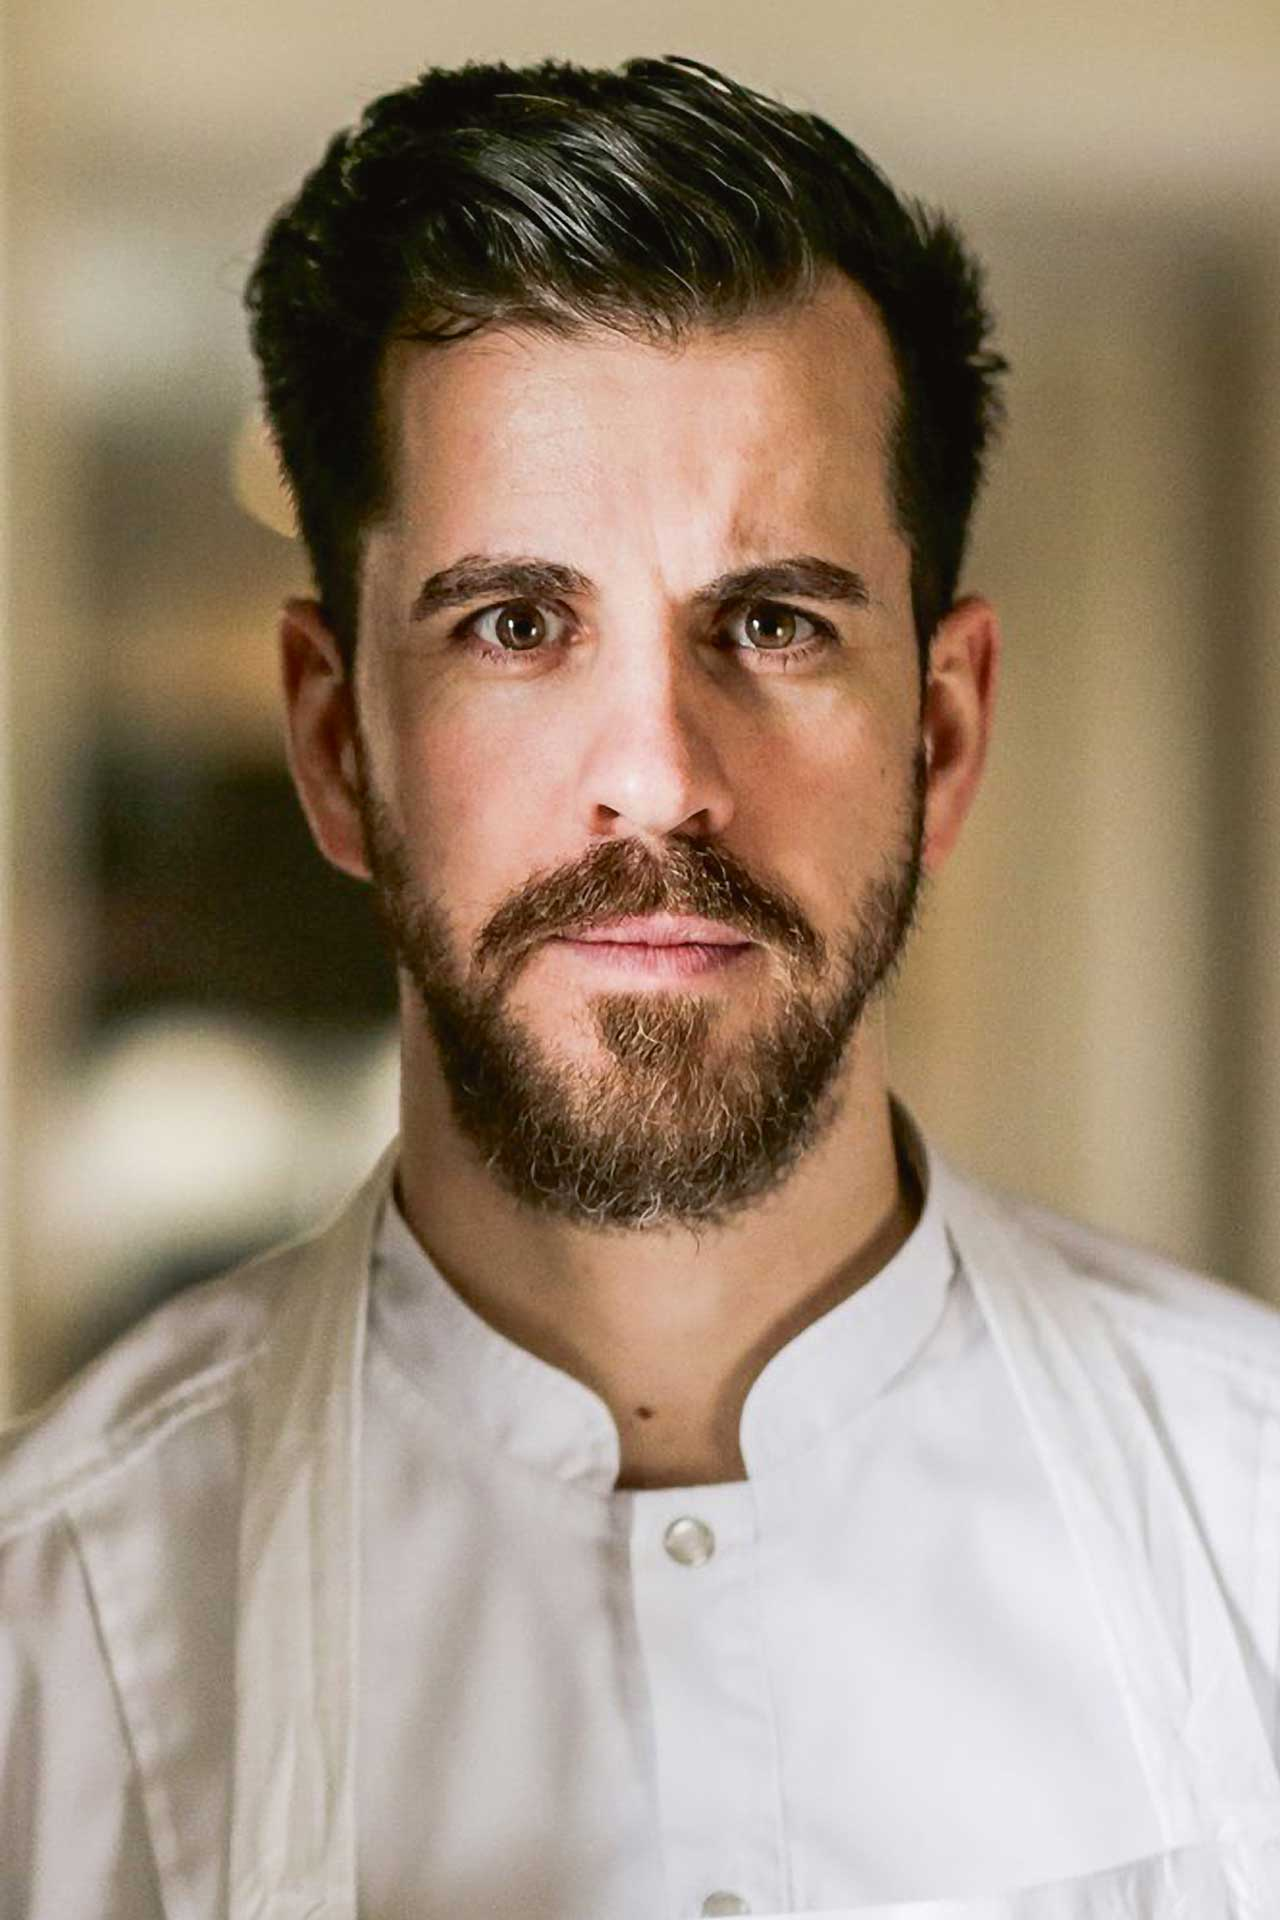 Peter Sanchez-Iglesias, Signature Chef at The Standard